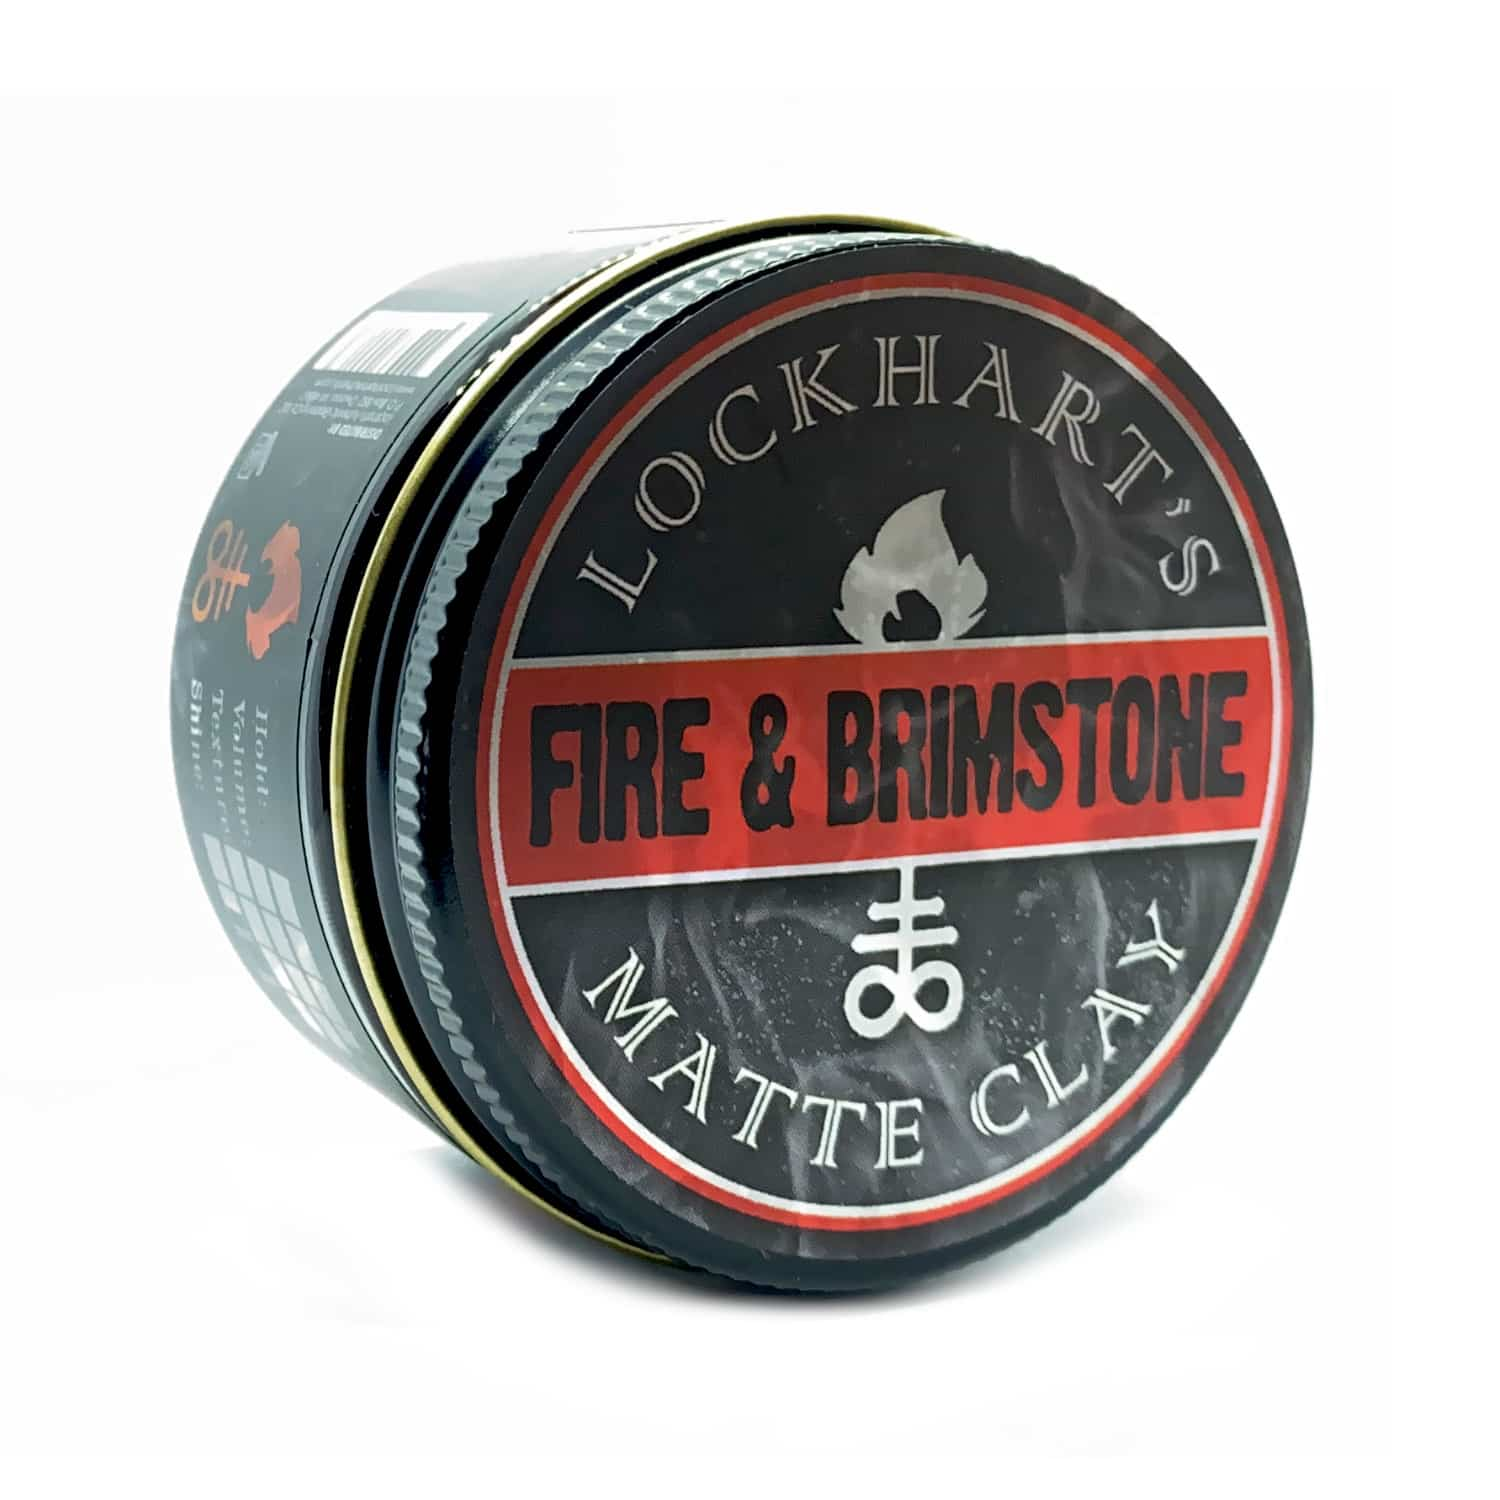 lockharts_fire_brimstone_matte_clay-min